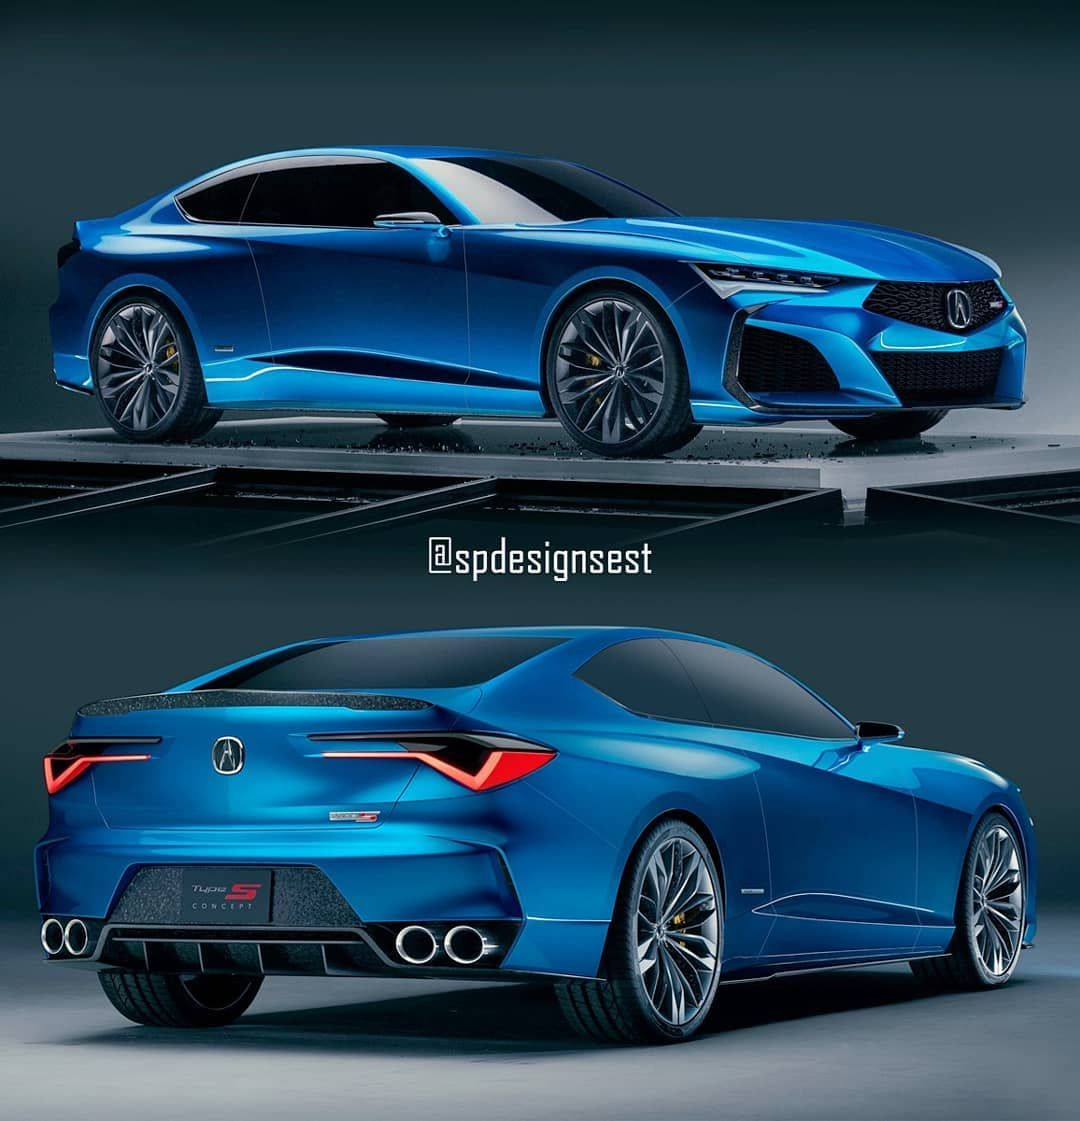 This Is My Custom Acura Type S Coupe Style Concept IDEA,in